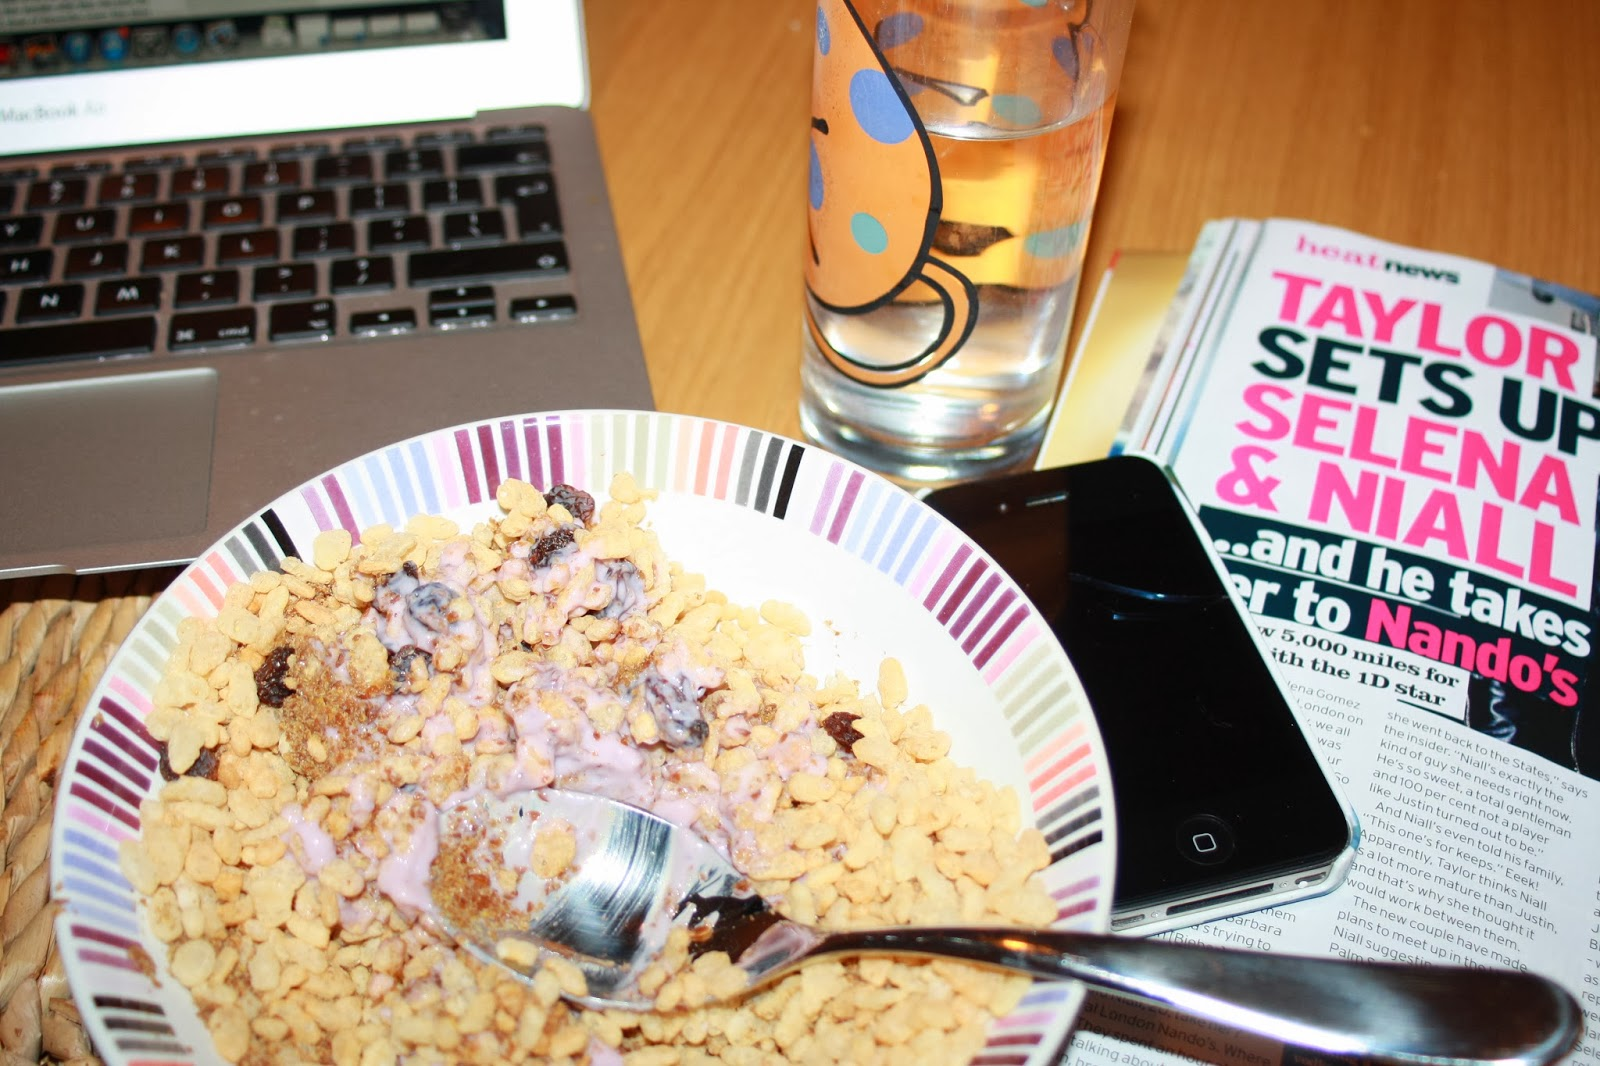 Morning-computer-breakfast-phone-magazine-Gallery